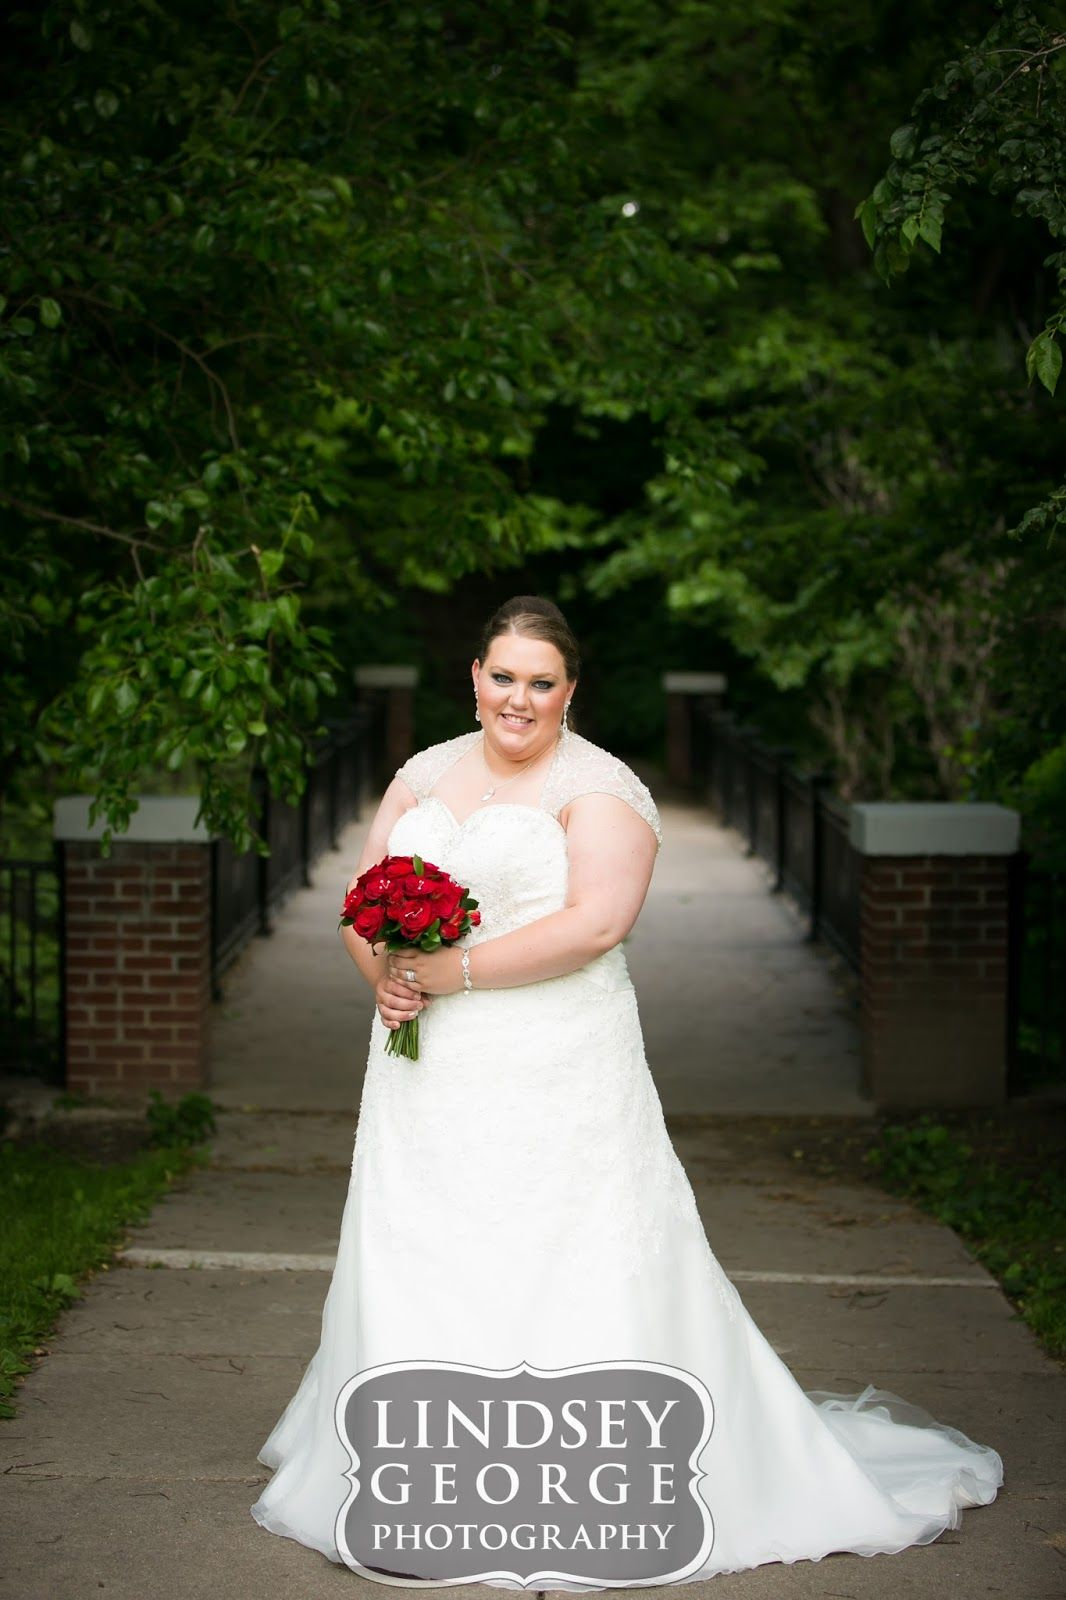 Sweetheart Neckline With Cap Sleeve Bridal Gown Click To View Full Gallery Omaha Nebraska Traditional